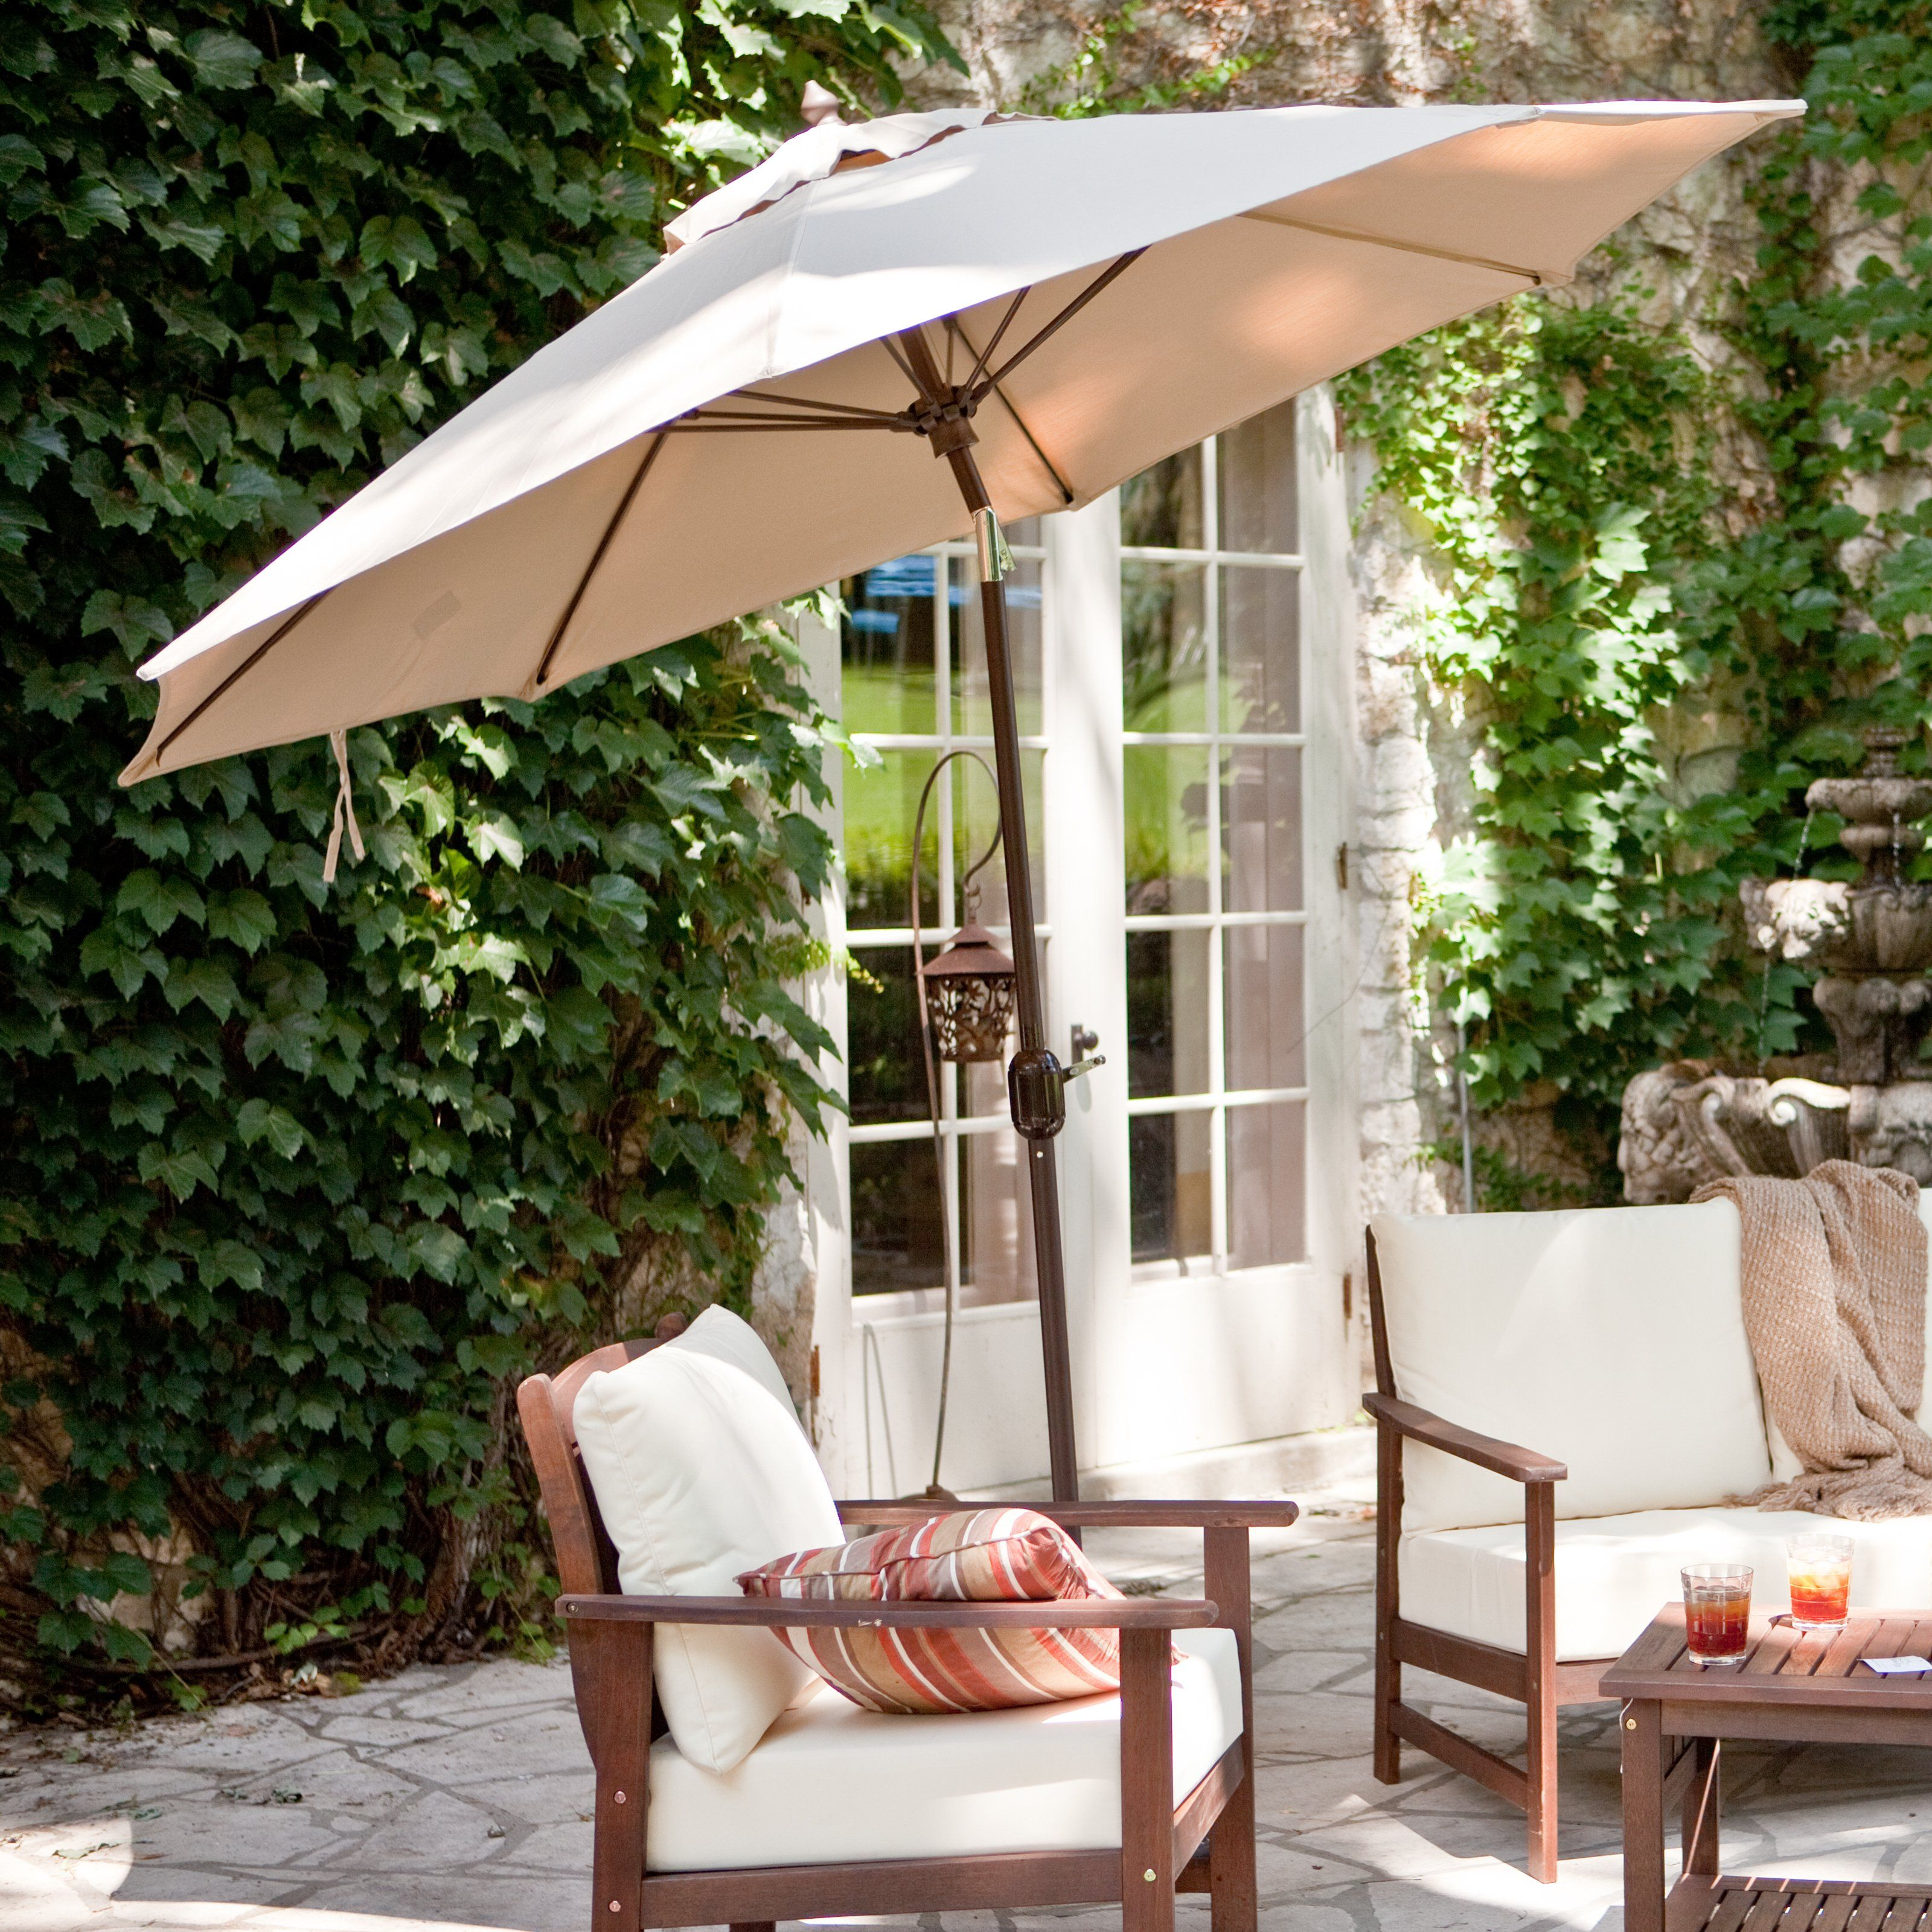 Sunbrella Deluxe Tilt Aluminum Patio Umbrella $219.98